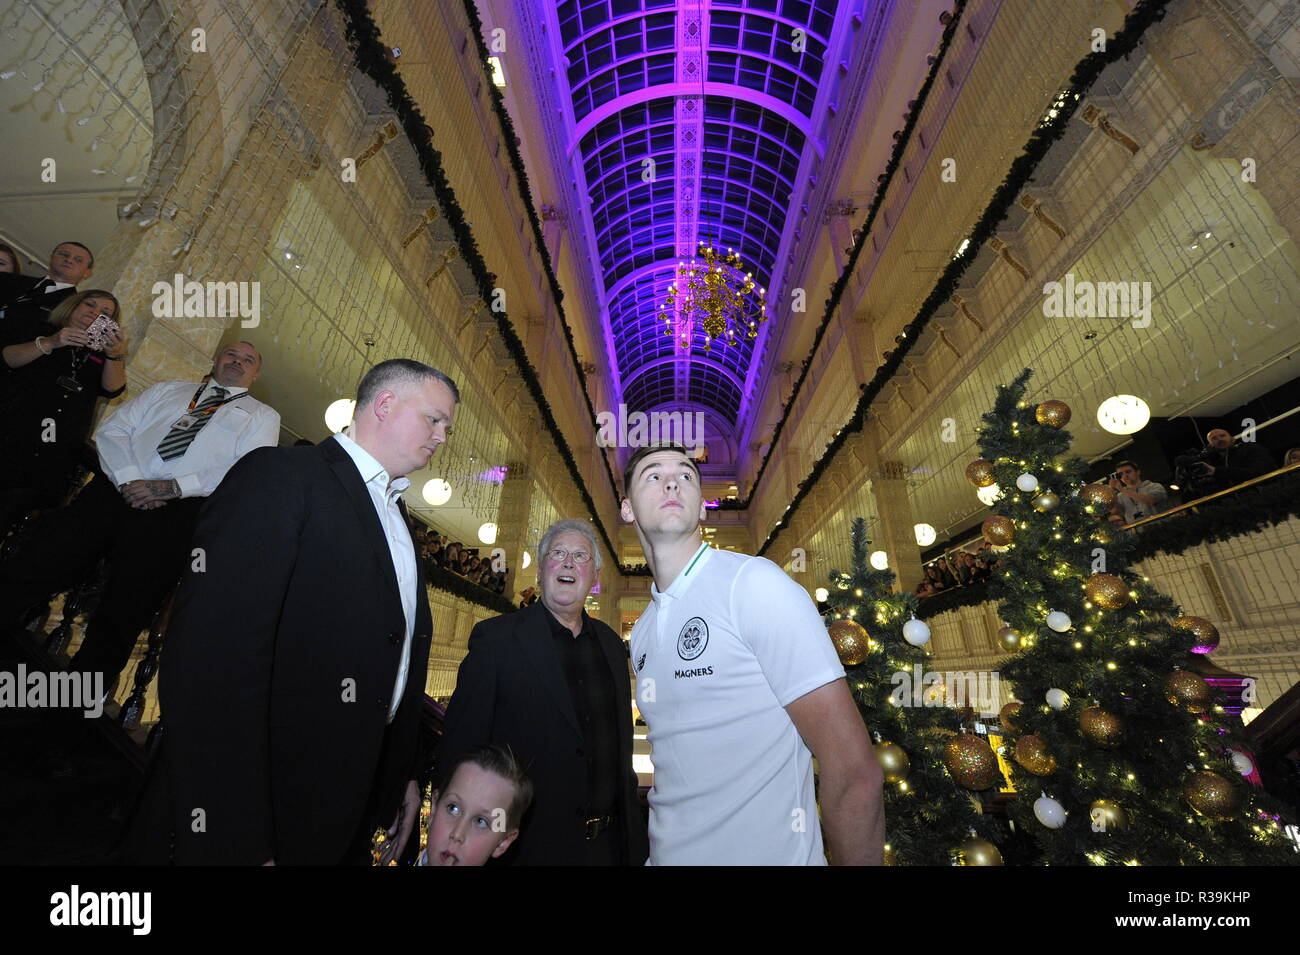 Glasgow, Scotland, UK. 22nd November 2018. Celtic's ace, Kieran Tierney switches on the Iconic Frasers Christmas lights at Mike Ashley's new House Of Fraser in Glasgow.  The event is to raise funds for St Margaret of Scotland Hospice in Clydebank. Credit: Colin Fisher/Alamy Live News - Stock Image